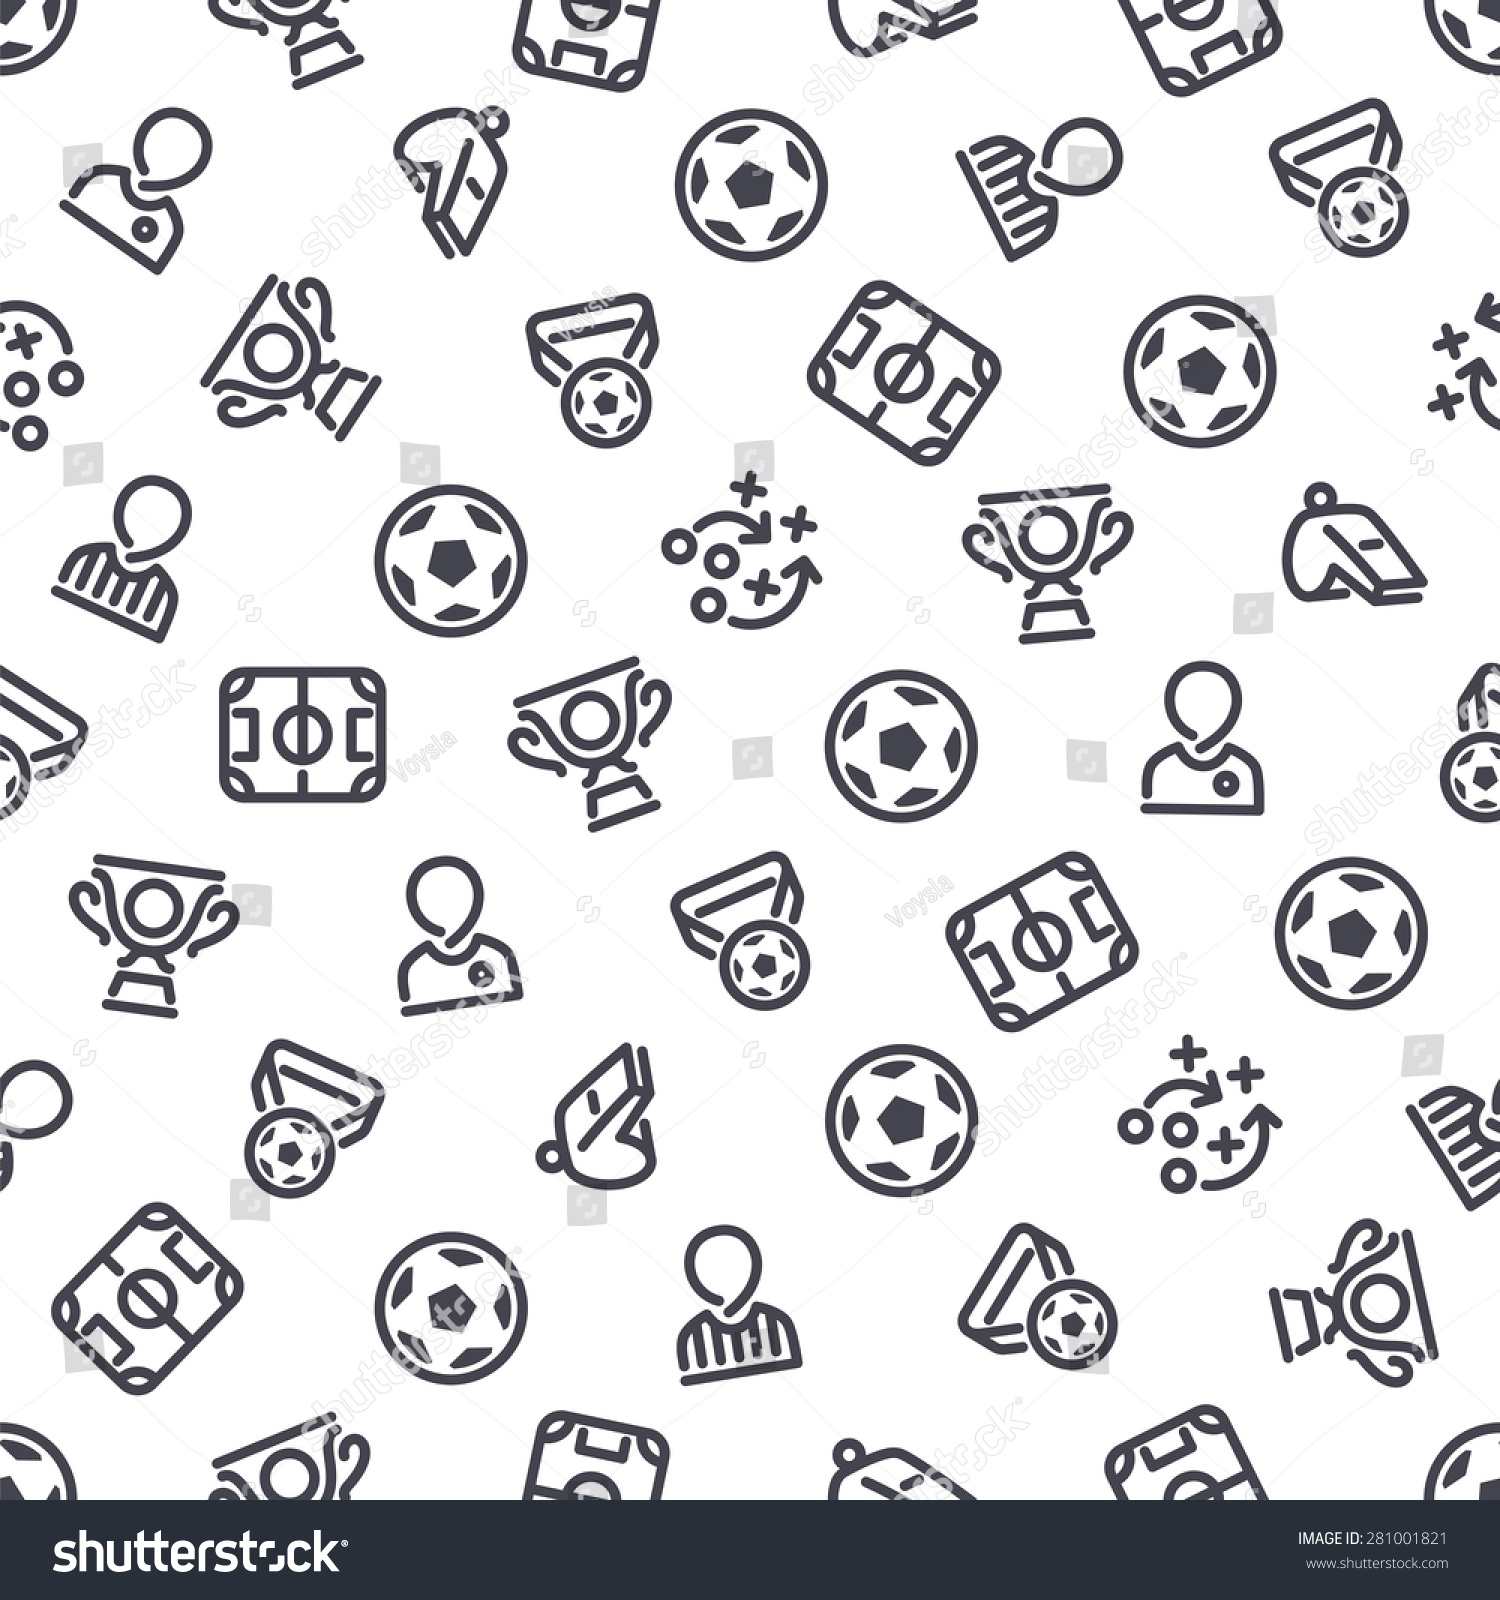 Soccer Pattern Awesome Ideas